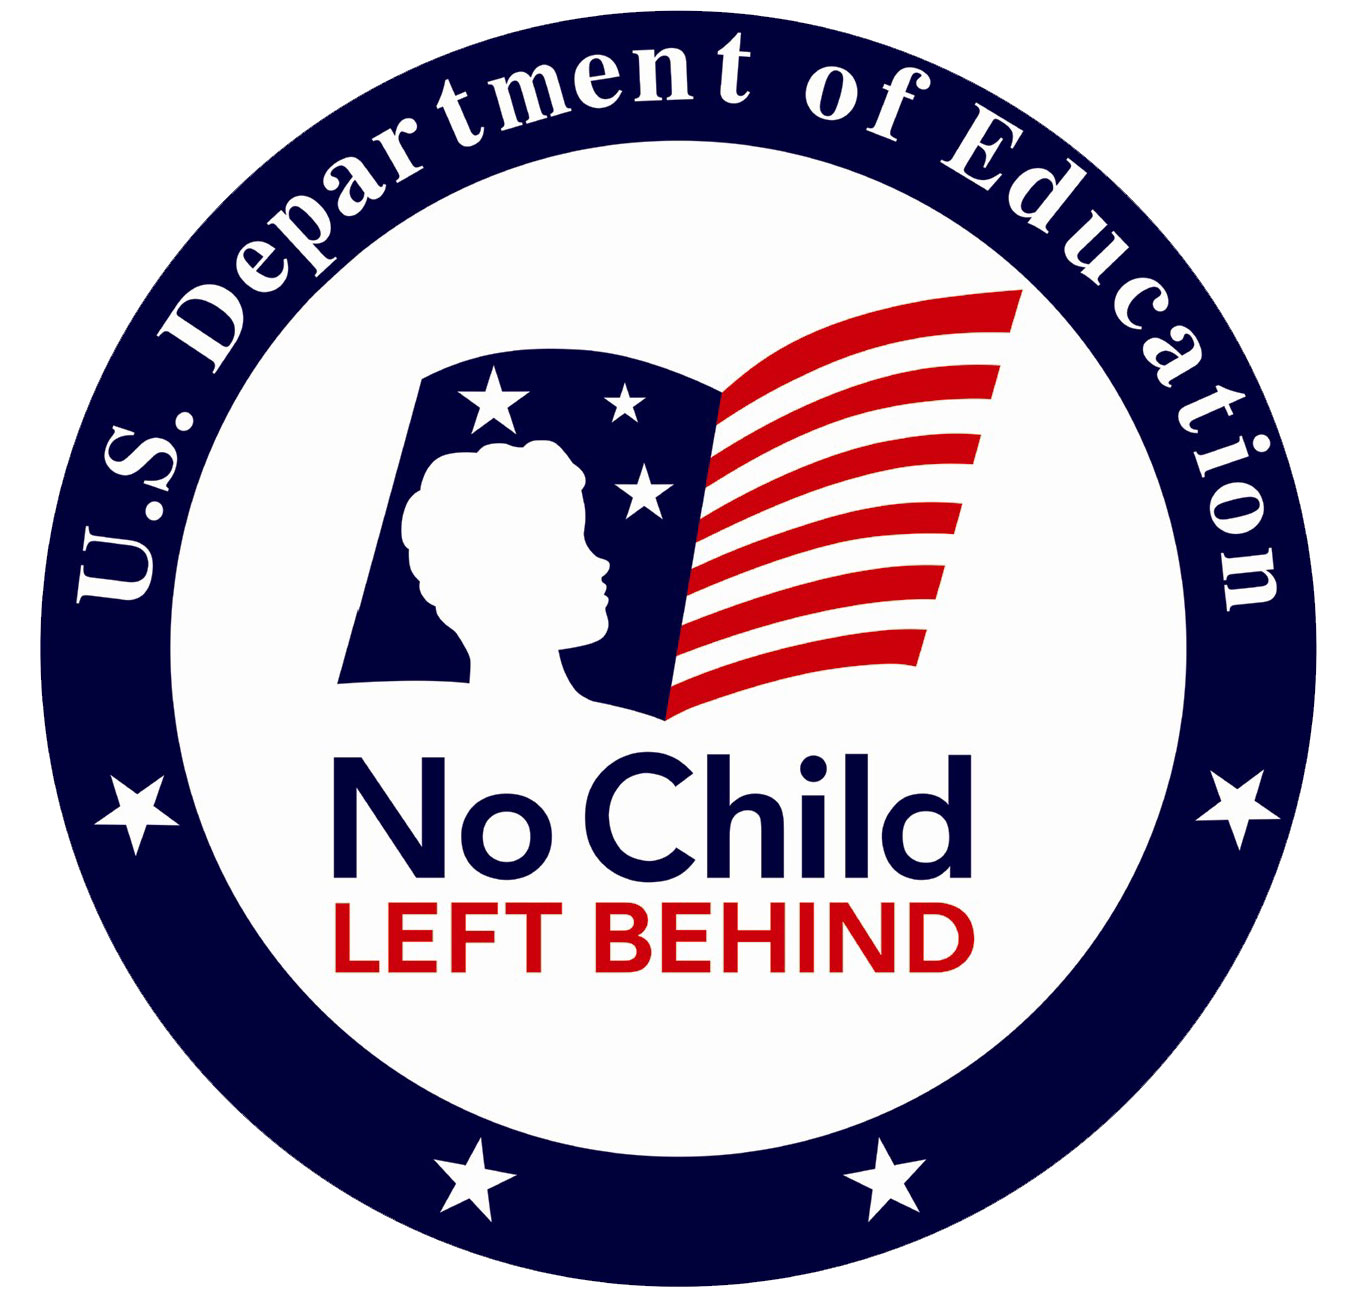 no child left behind term papers The no child left behind act of 2001 was created to ensure that all student were given a fair opportunity to receive a good education from the public school systems before 2001, there was a large performance gap between students with a higher economic advantage and those students with less.